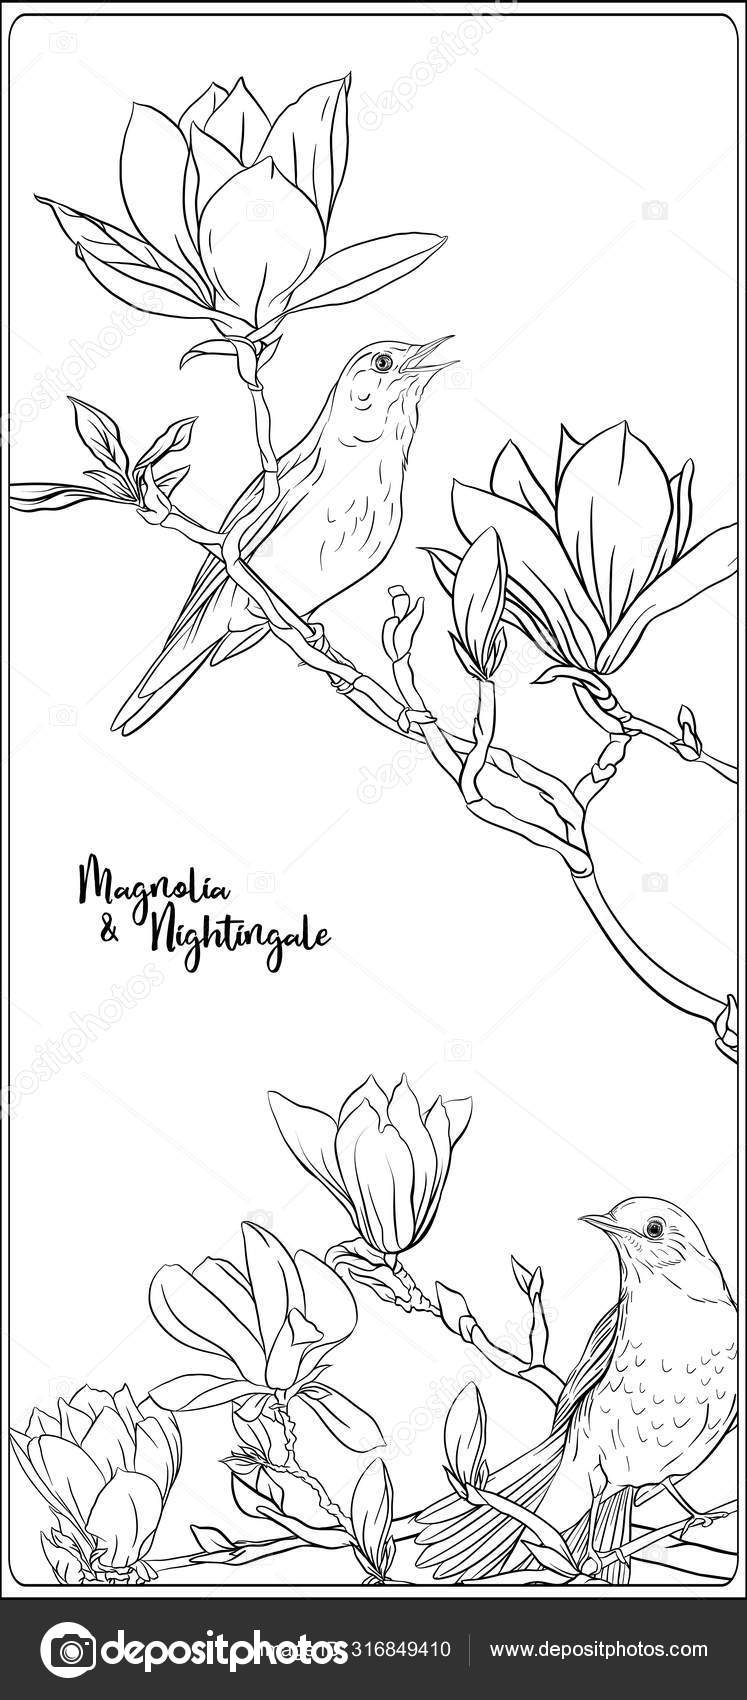 Magnolia Tree Branch Flowers Nightingale Coloring Stock Vector ... | 1700x747